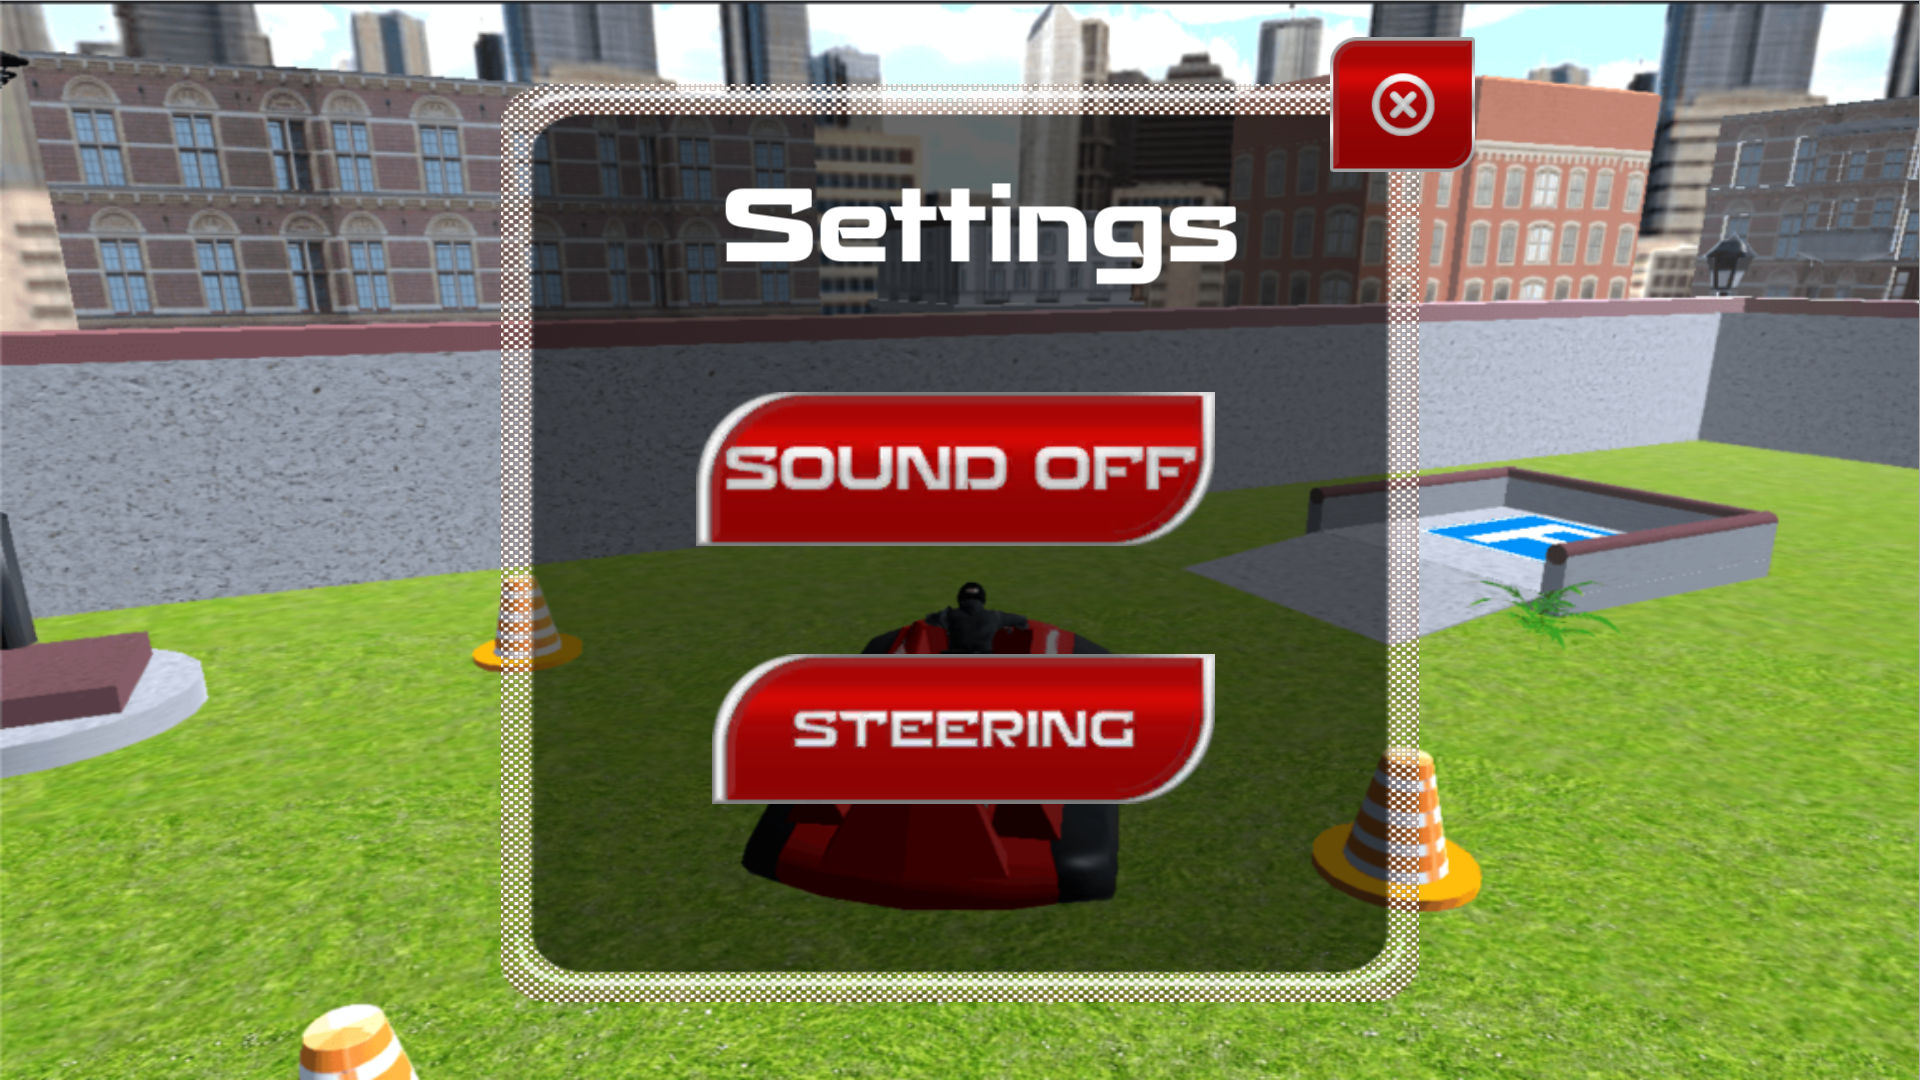 Hovercraft Ride -Complete Unity 3D Game Project For Android & IOS